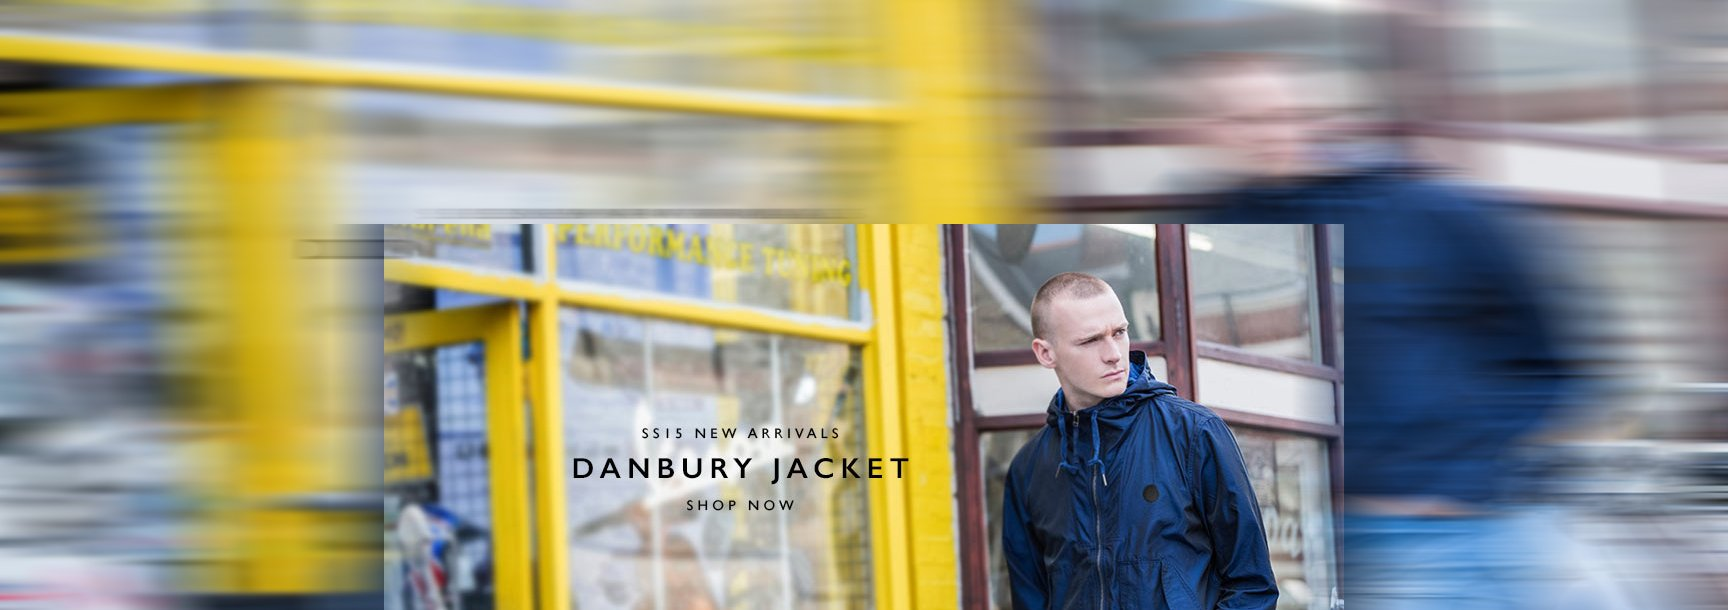 danbury jacket